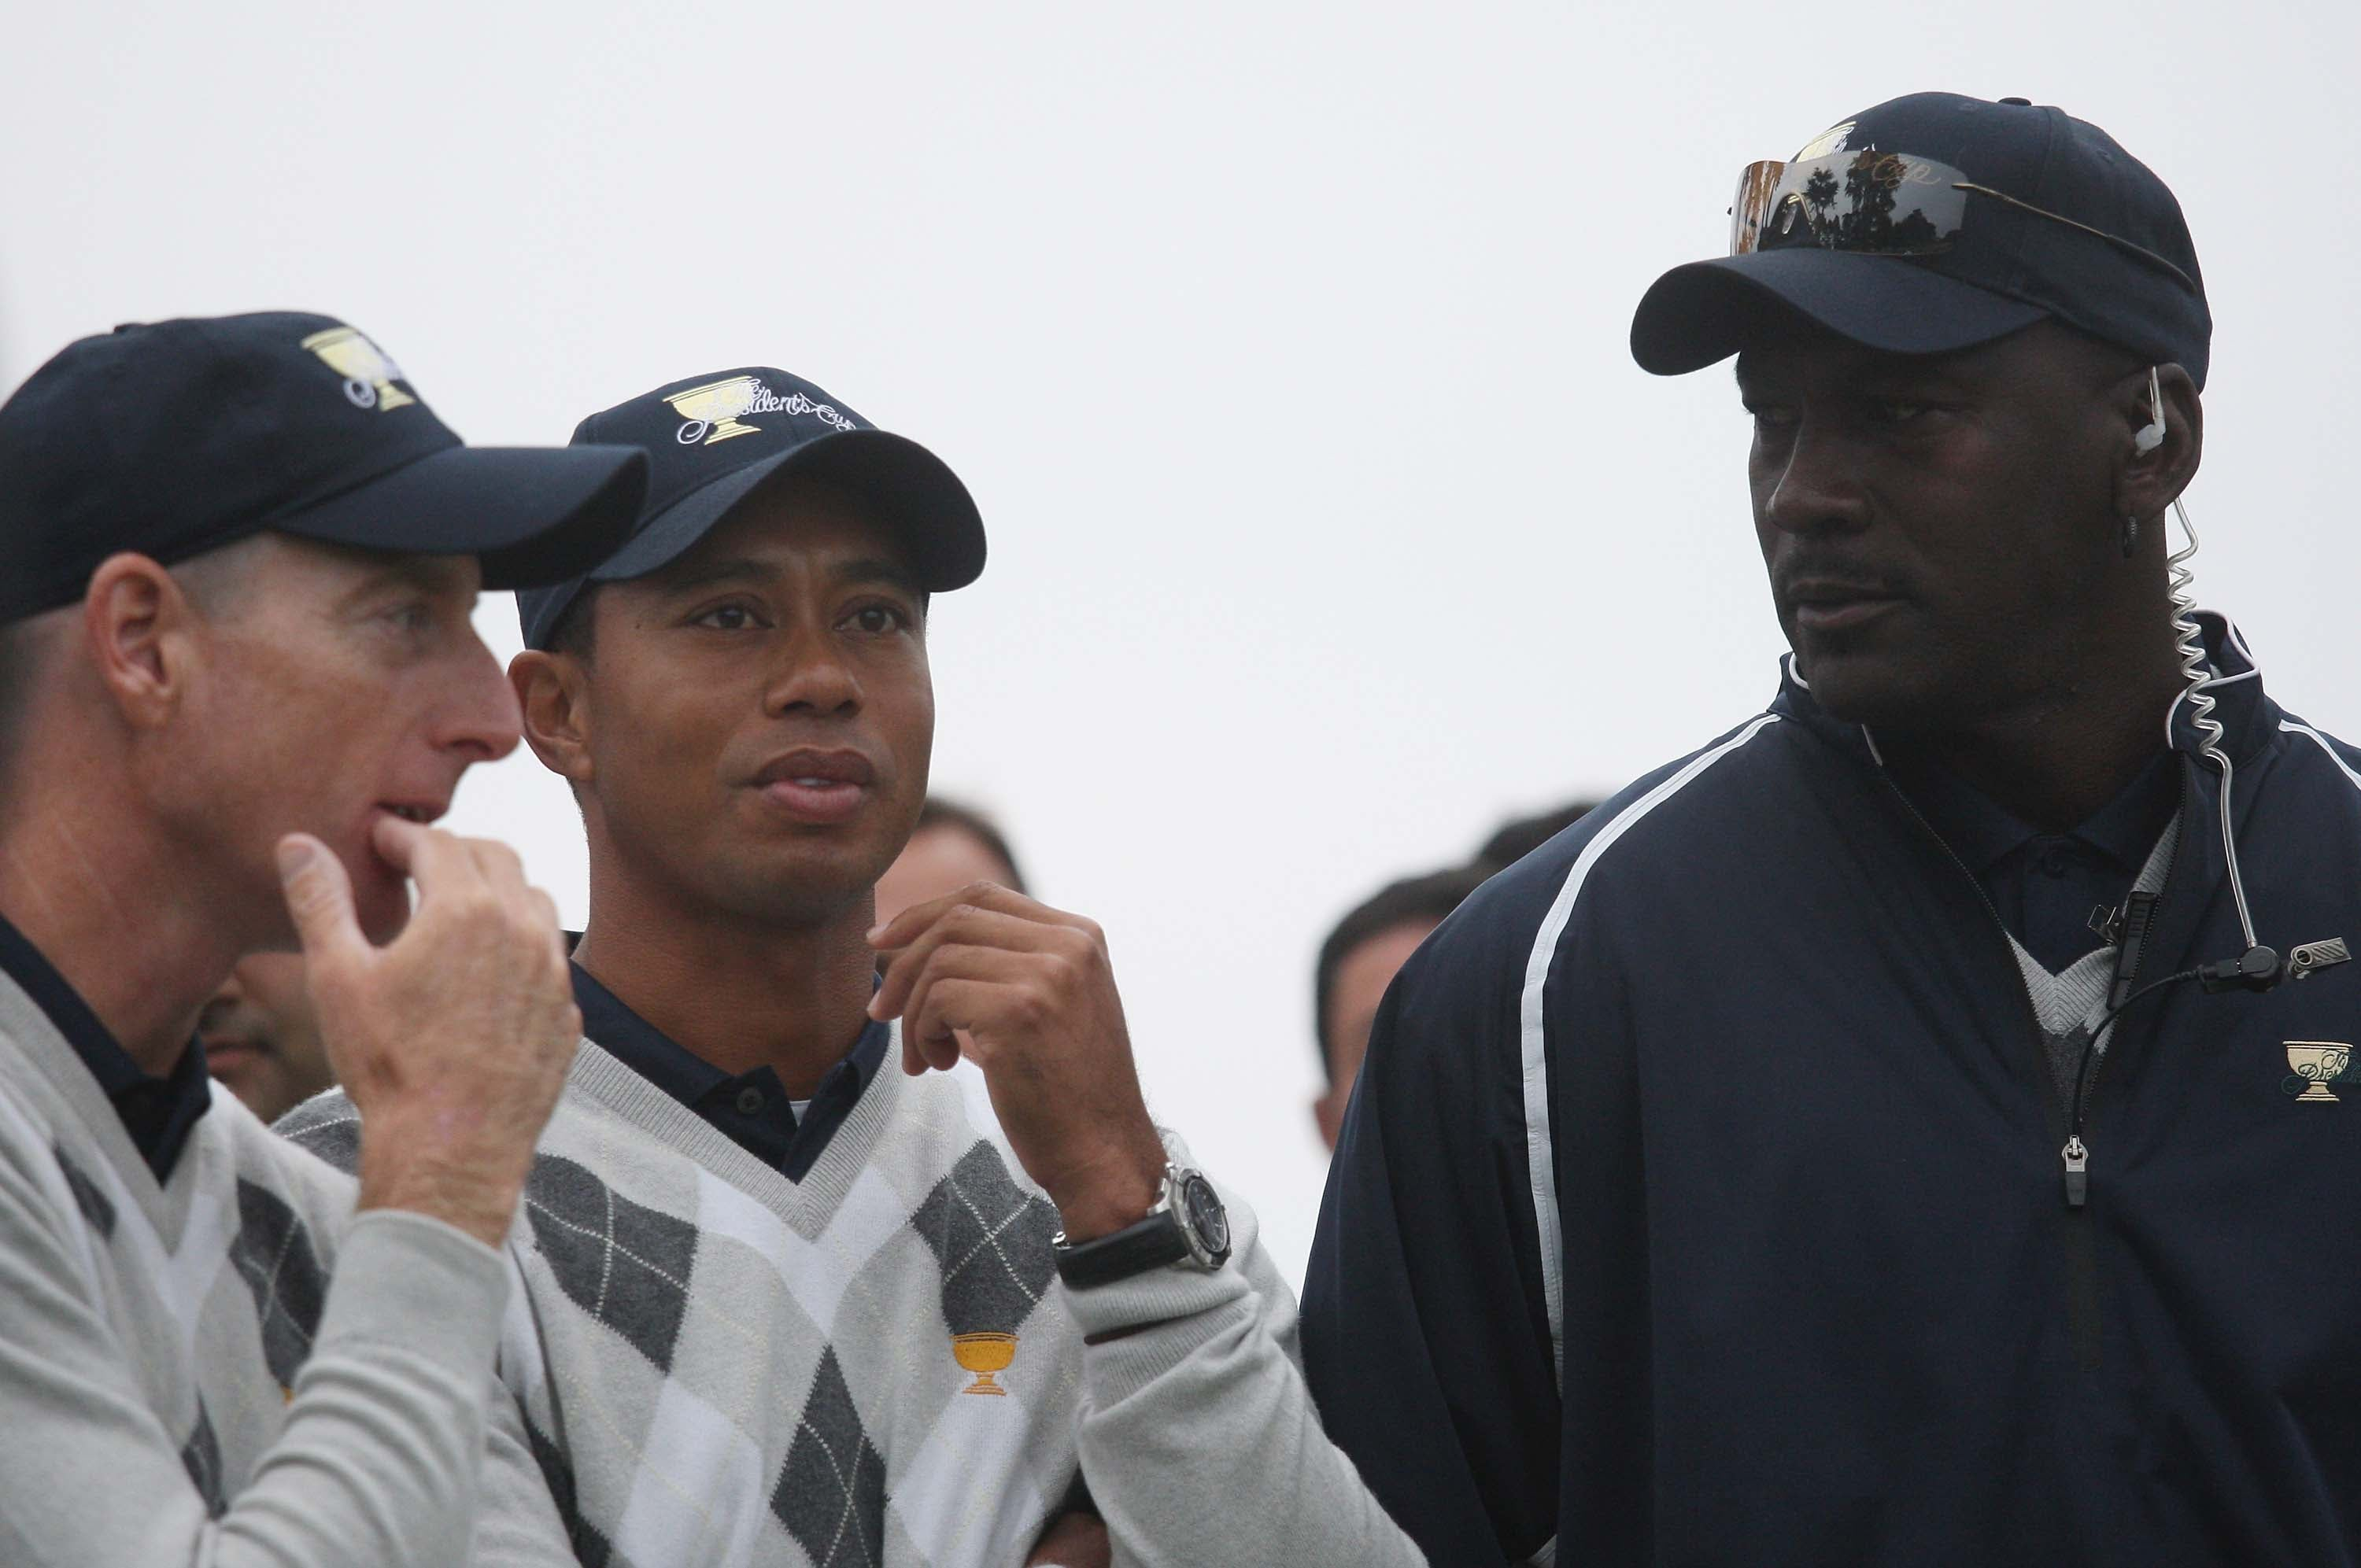 Michael Jordan, Tiger Woods and Jim Furyk